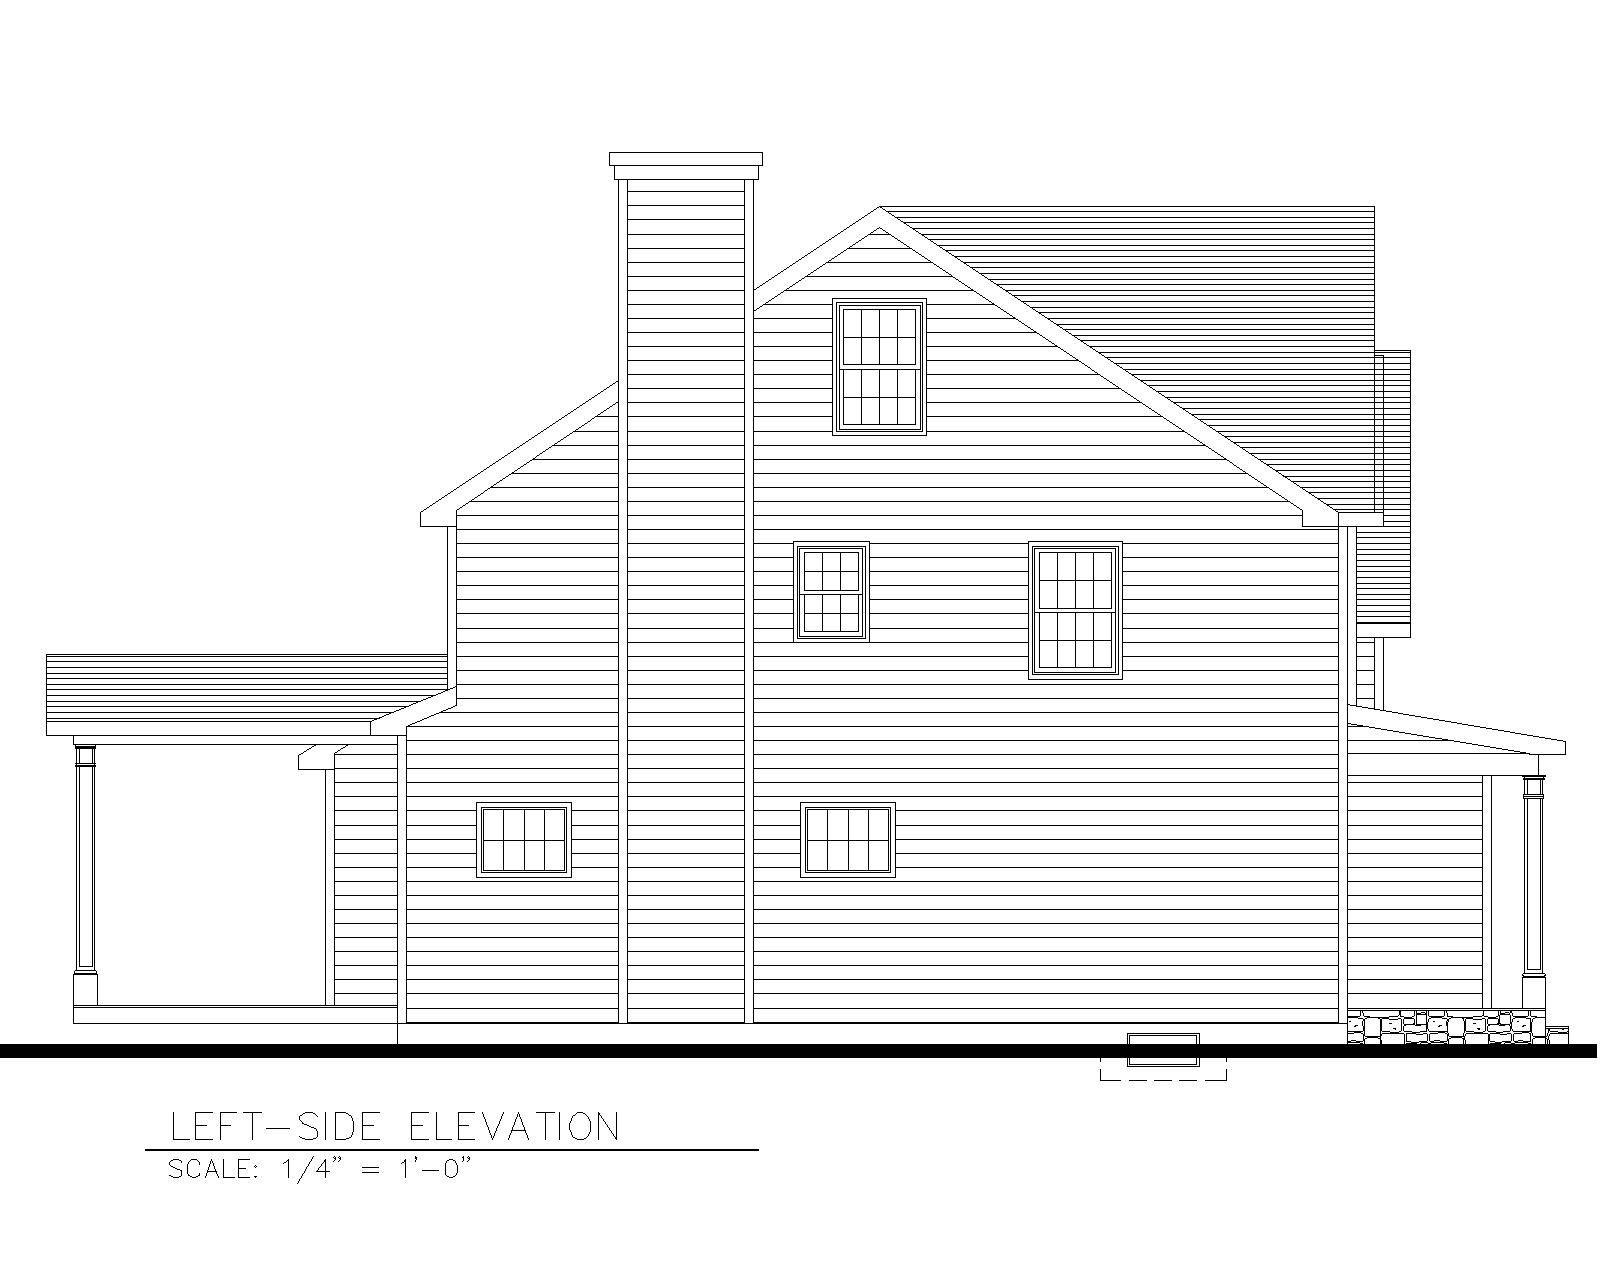 816 Left Side Elevation